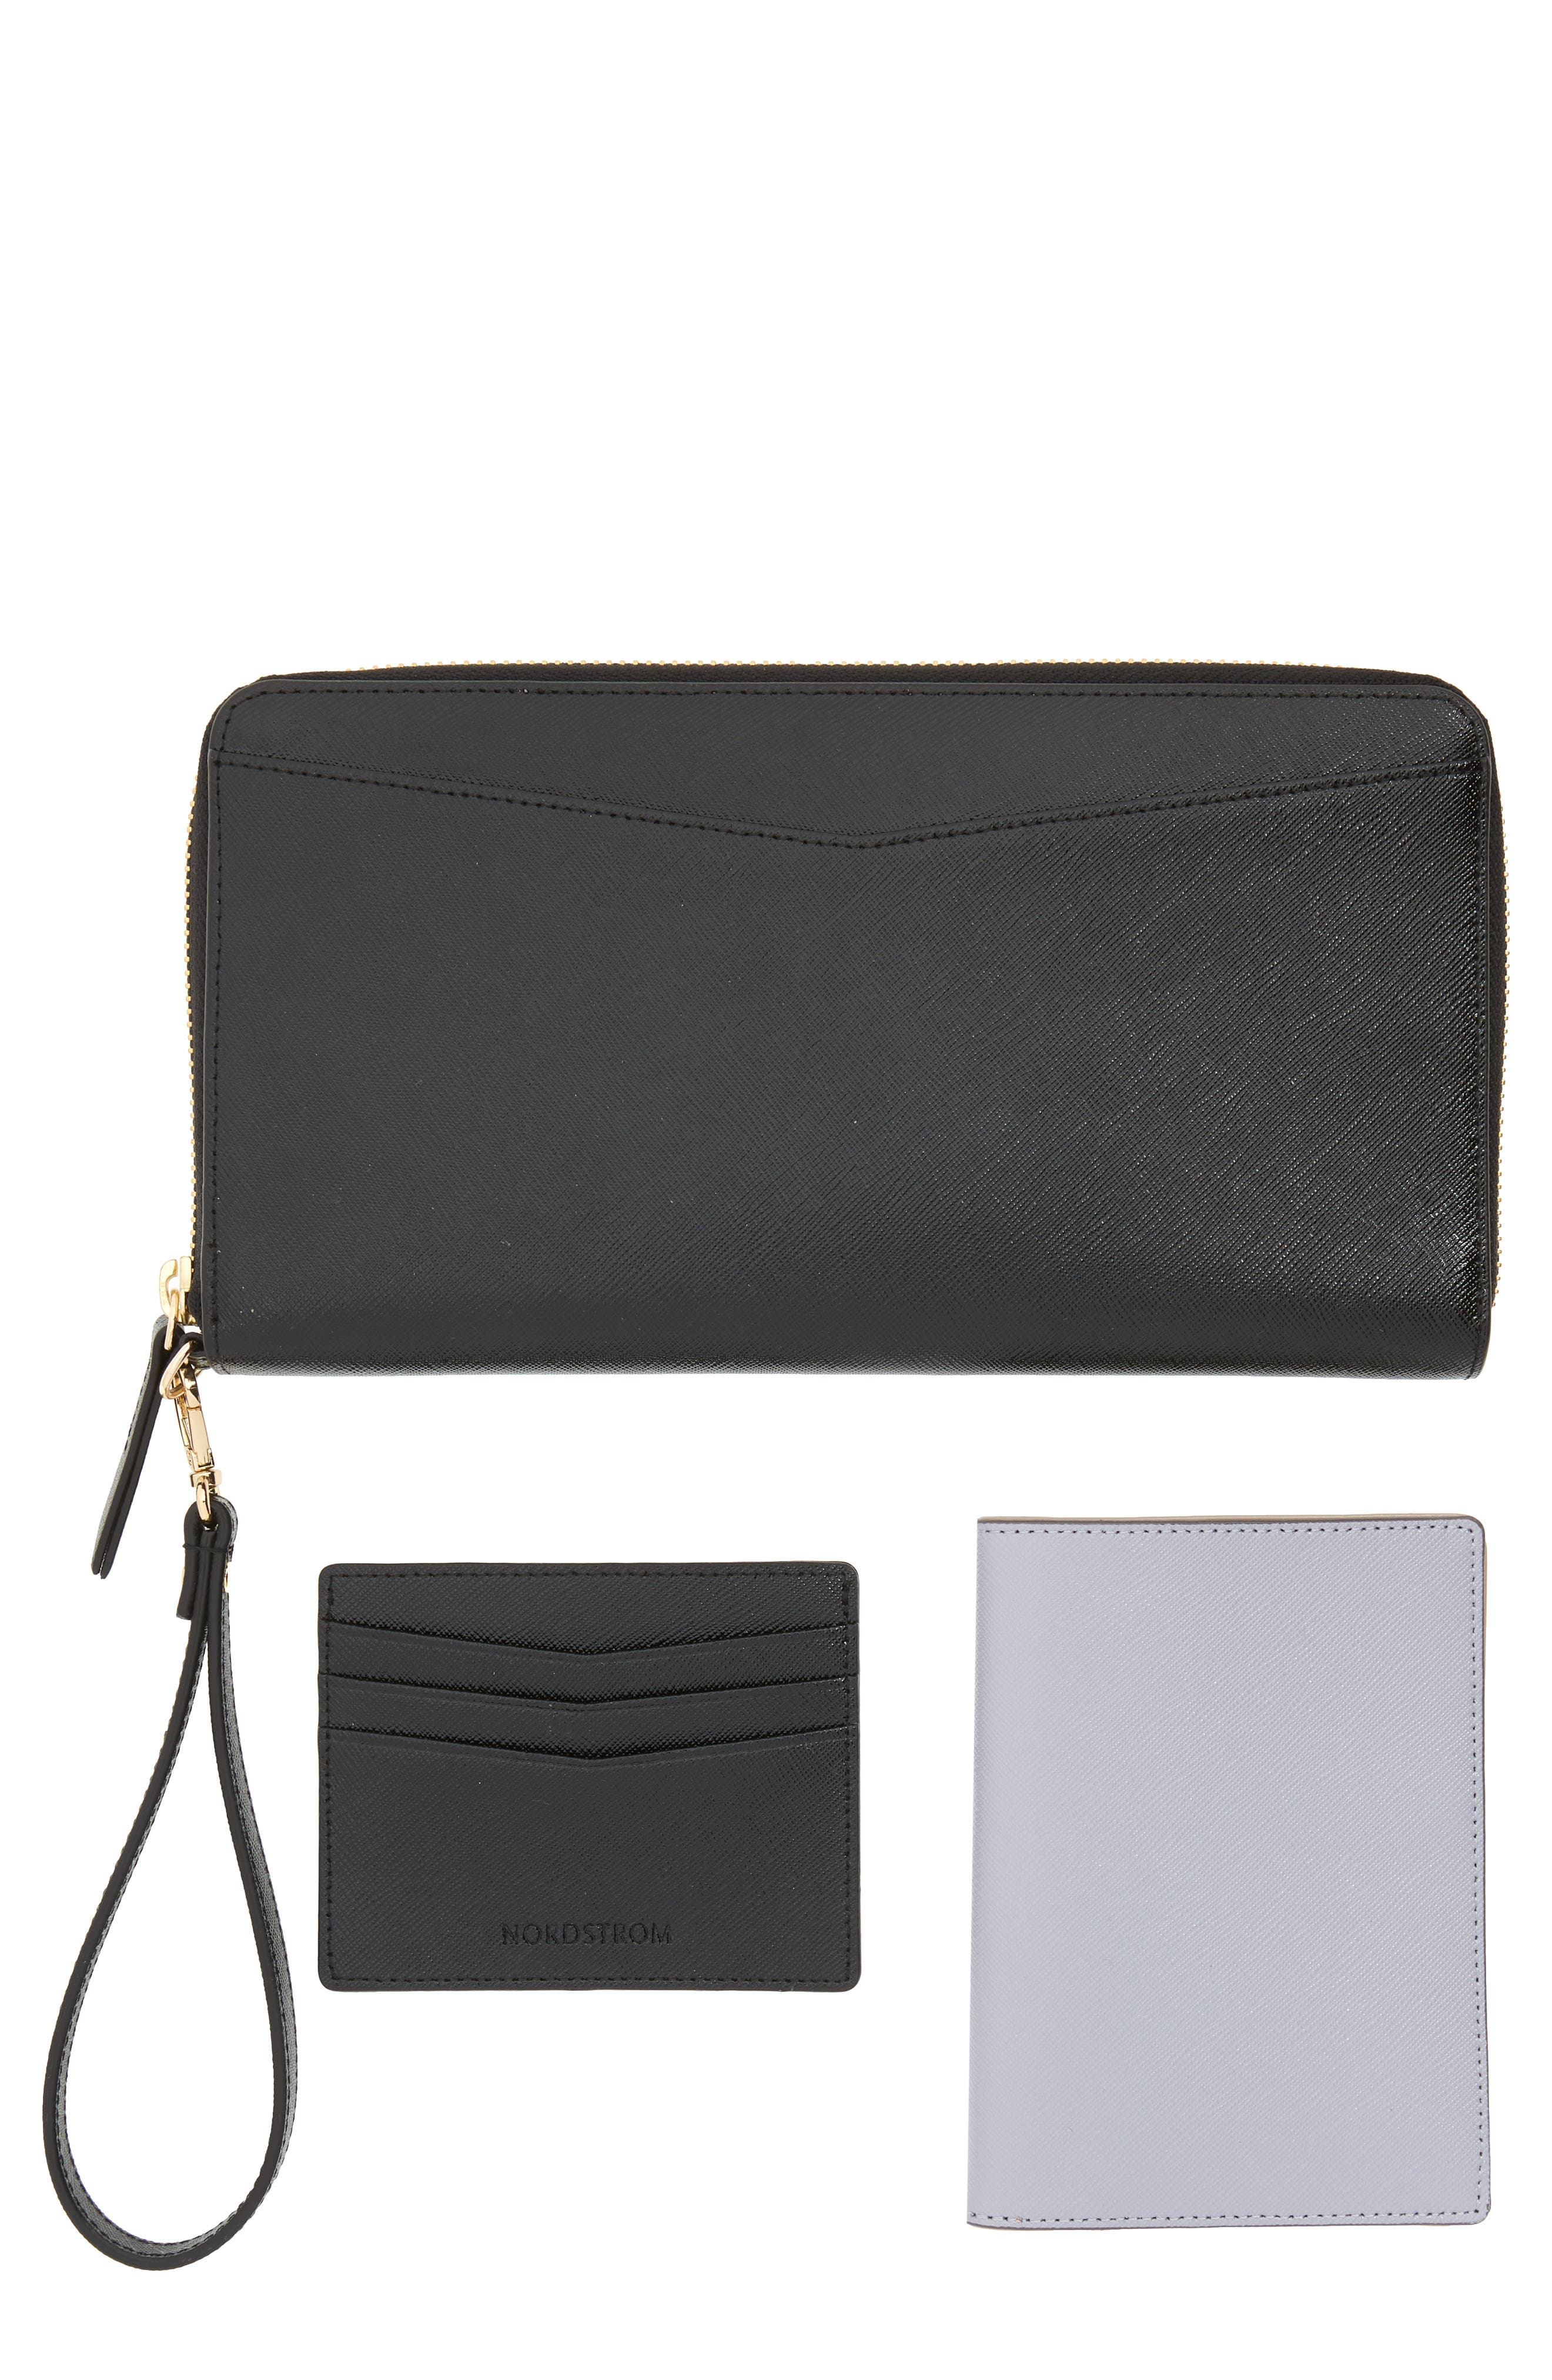 NORDSTROM, Leather Travel Organizer, Main thumbnail 1, color, BLACK